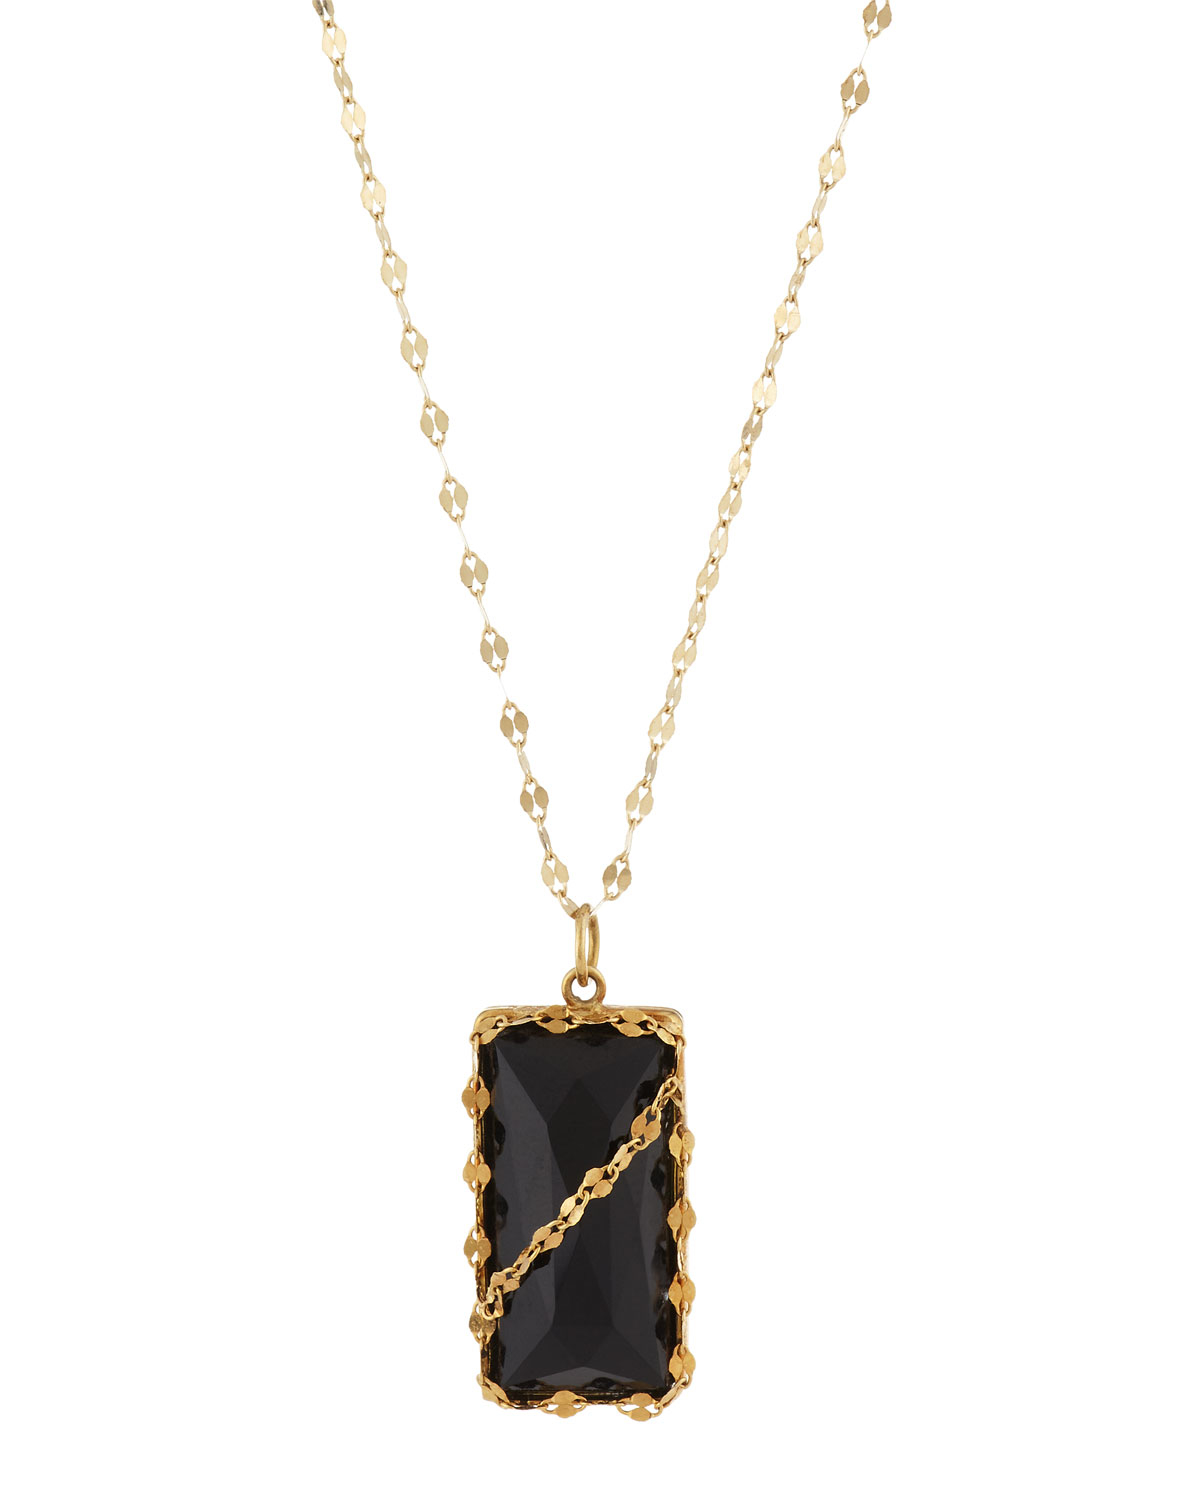 Lyst lana jewelry 14k muse black onyx pendant necklace in metallic gallery aloadofball Images